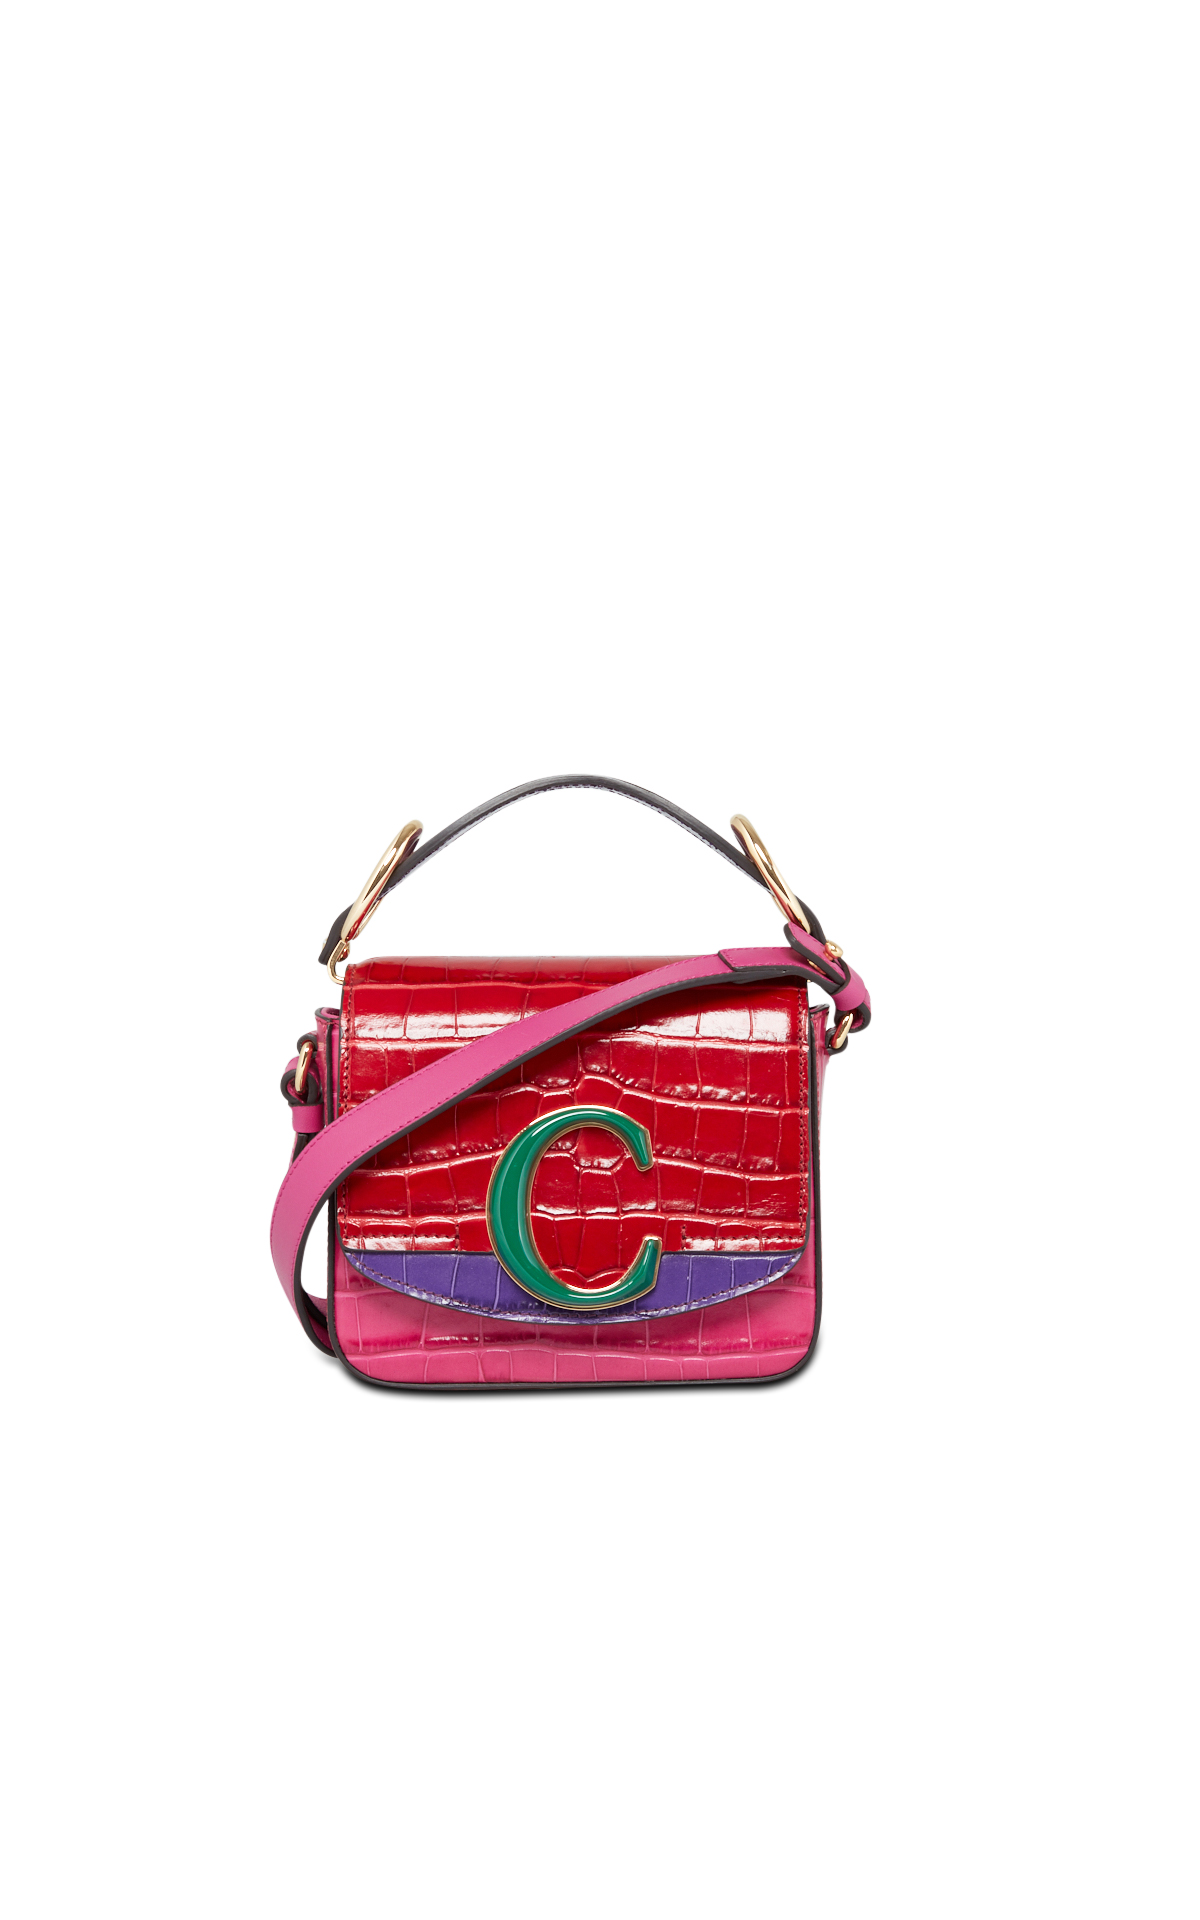 Chloé Pink and red 'C' bag